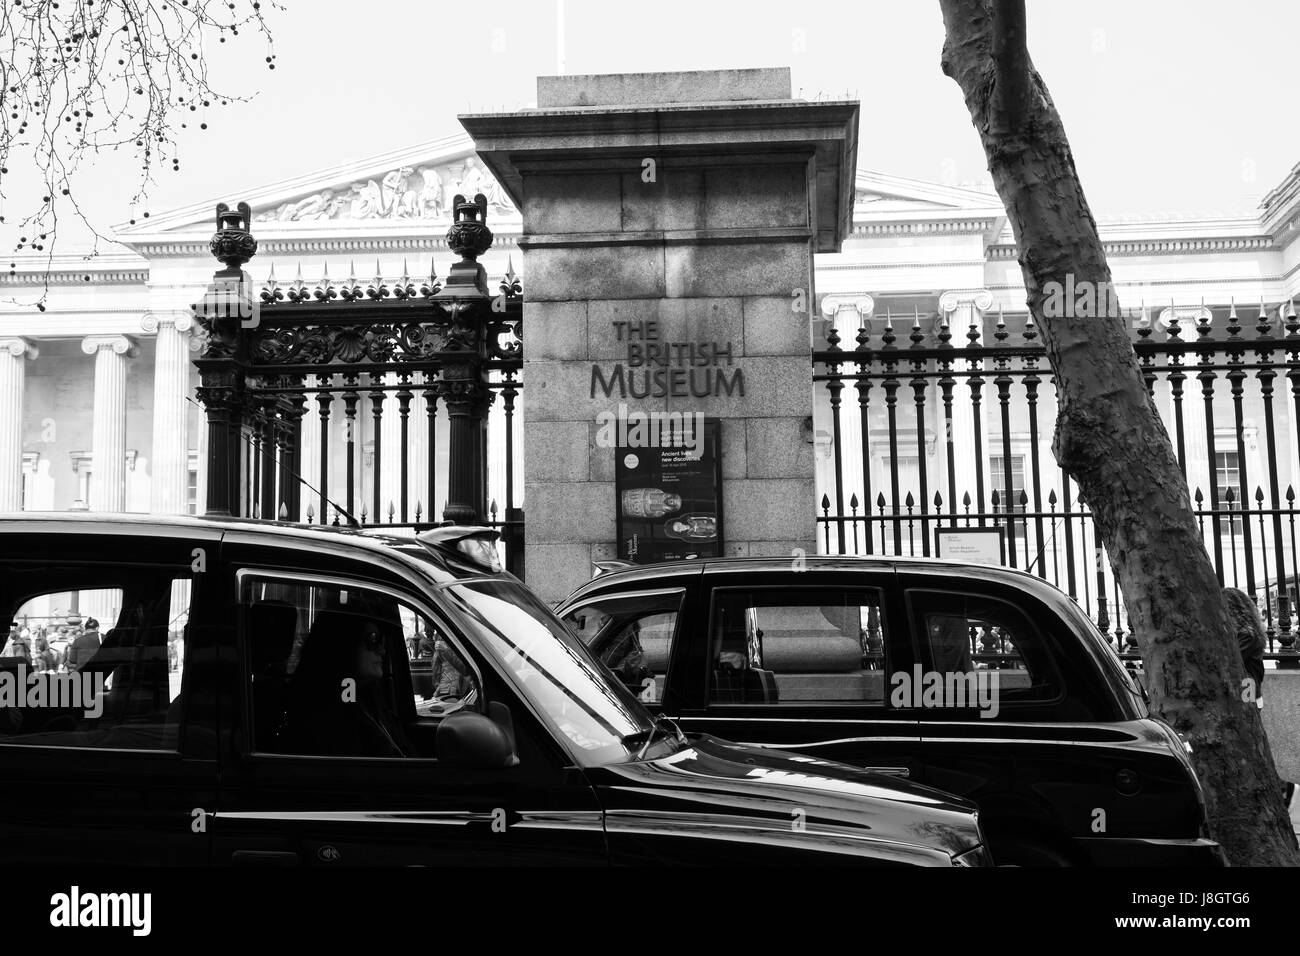 UK, London - 08 April 2015: The British Museum in London. Sign at the entrance to the museum. - Stock Image